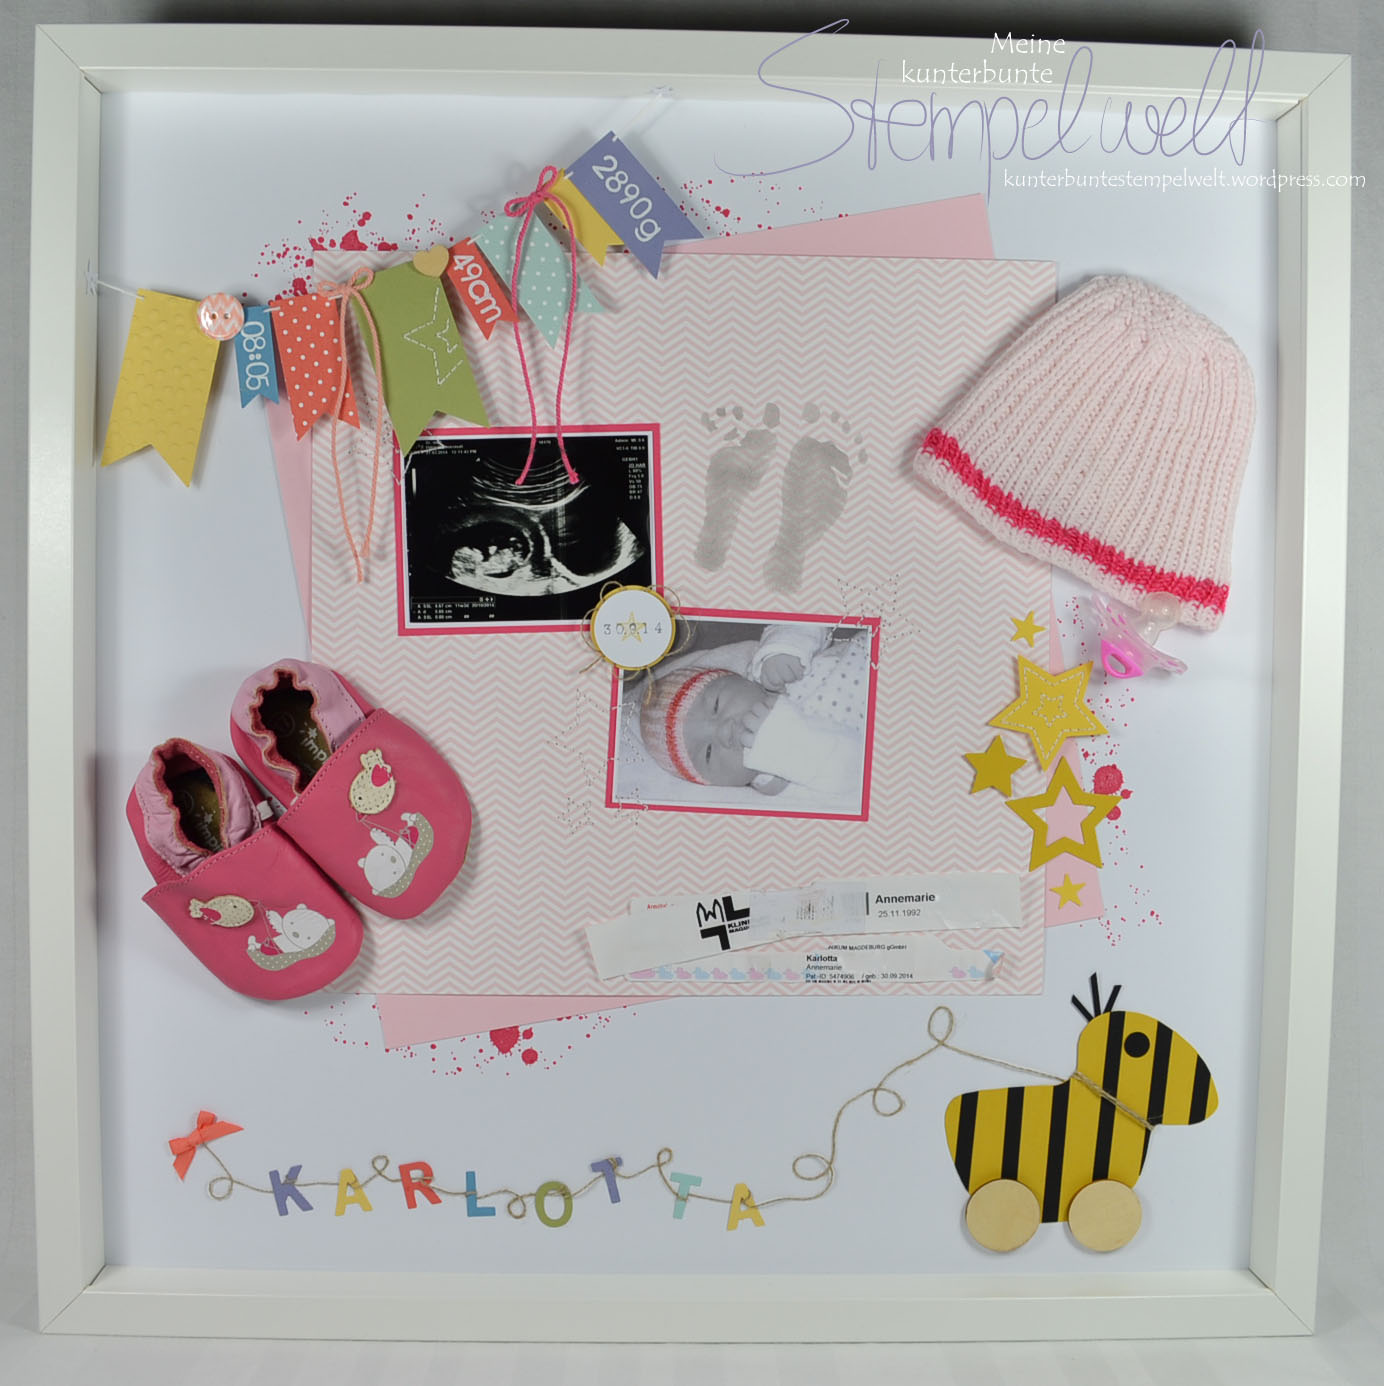 baby shadow box karlotta meine kunterbunte stempelwelt. Black Bedroom Furniture Sets. Home Design Ideas